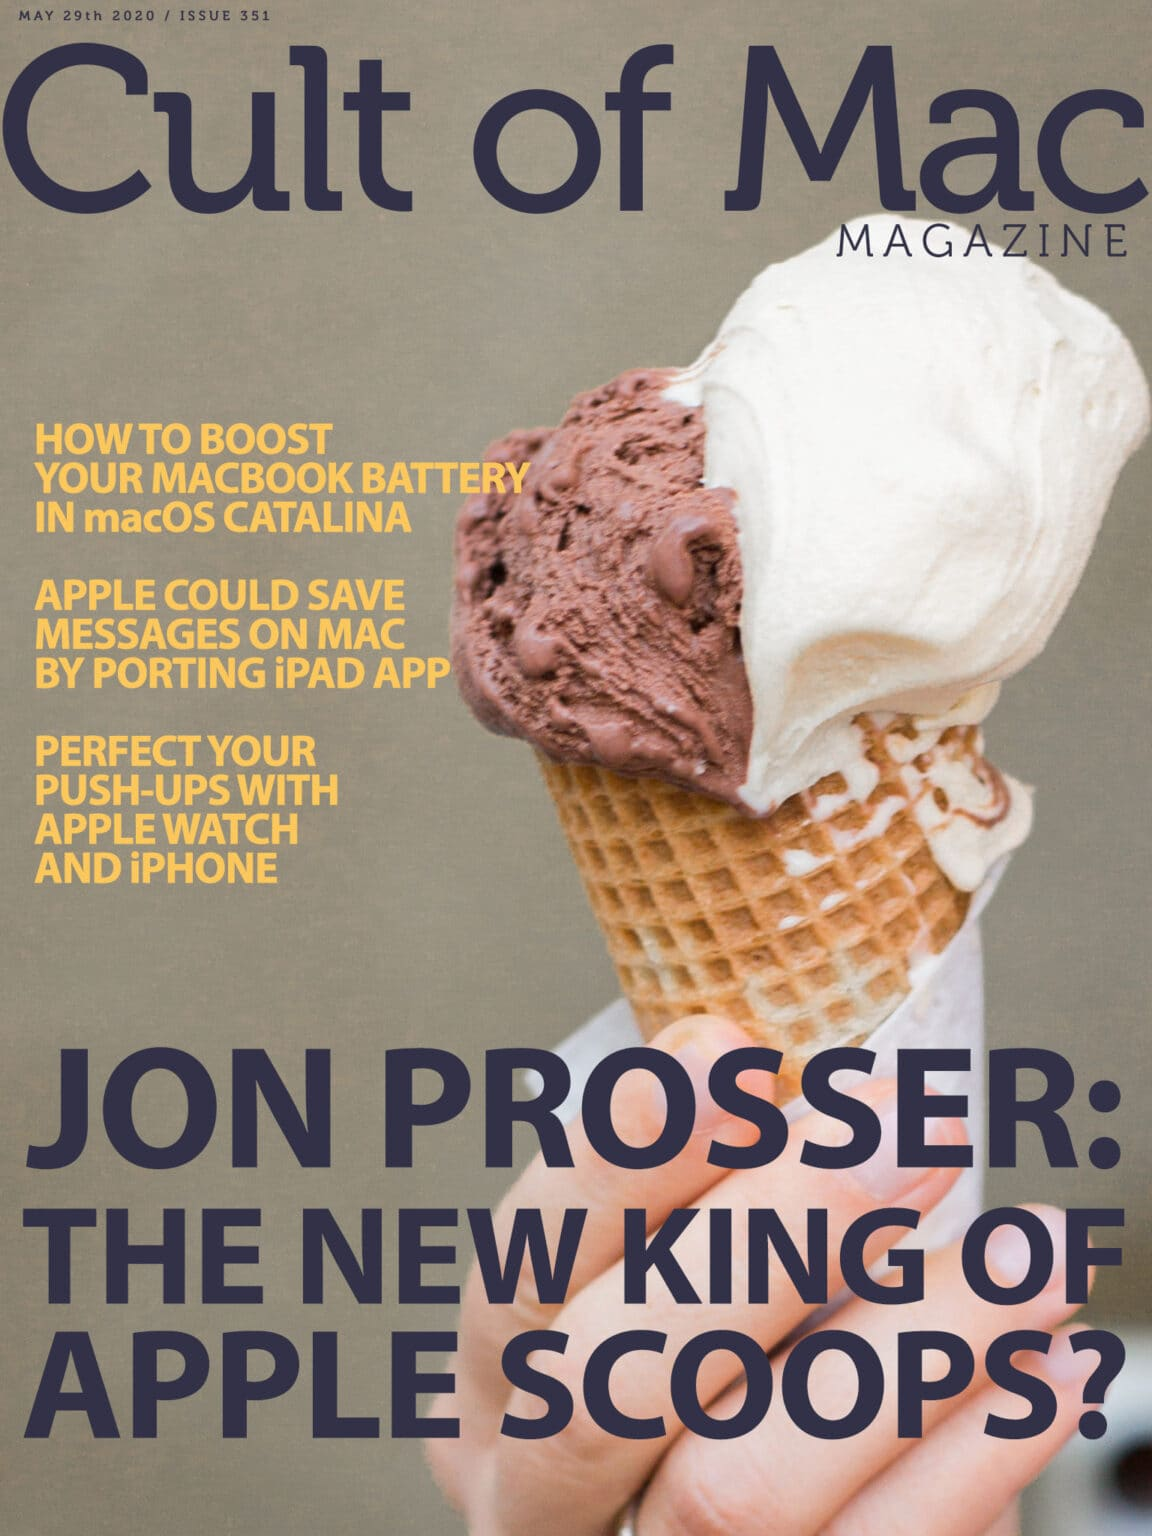 Jon Prosser: The new king of Apple scoops?